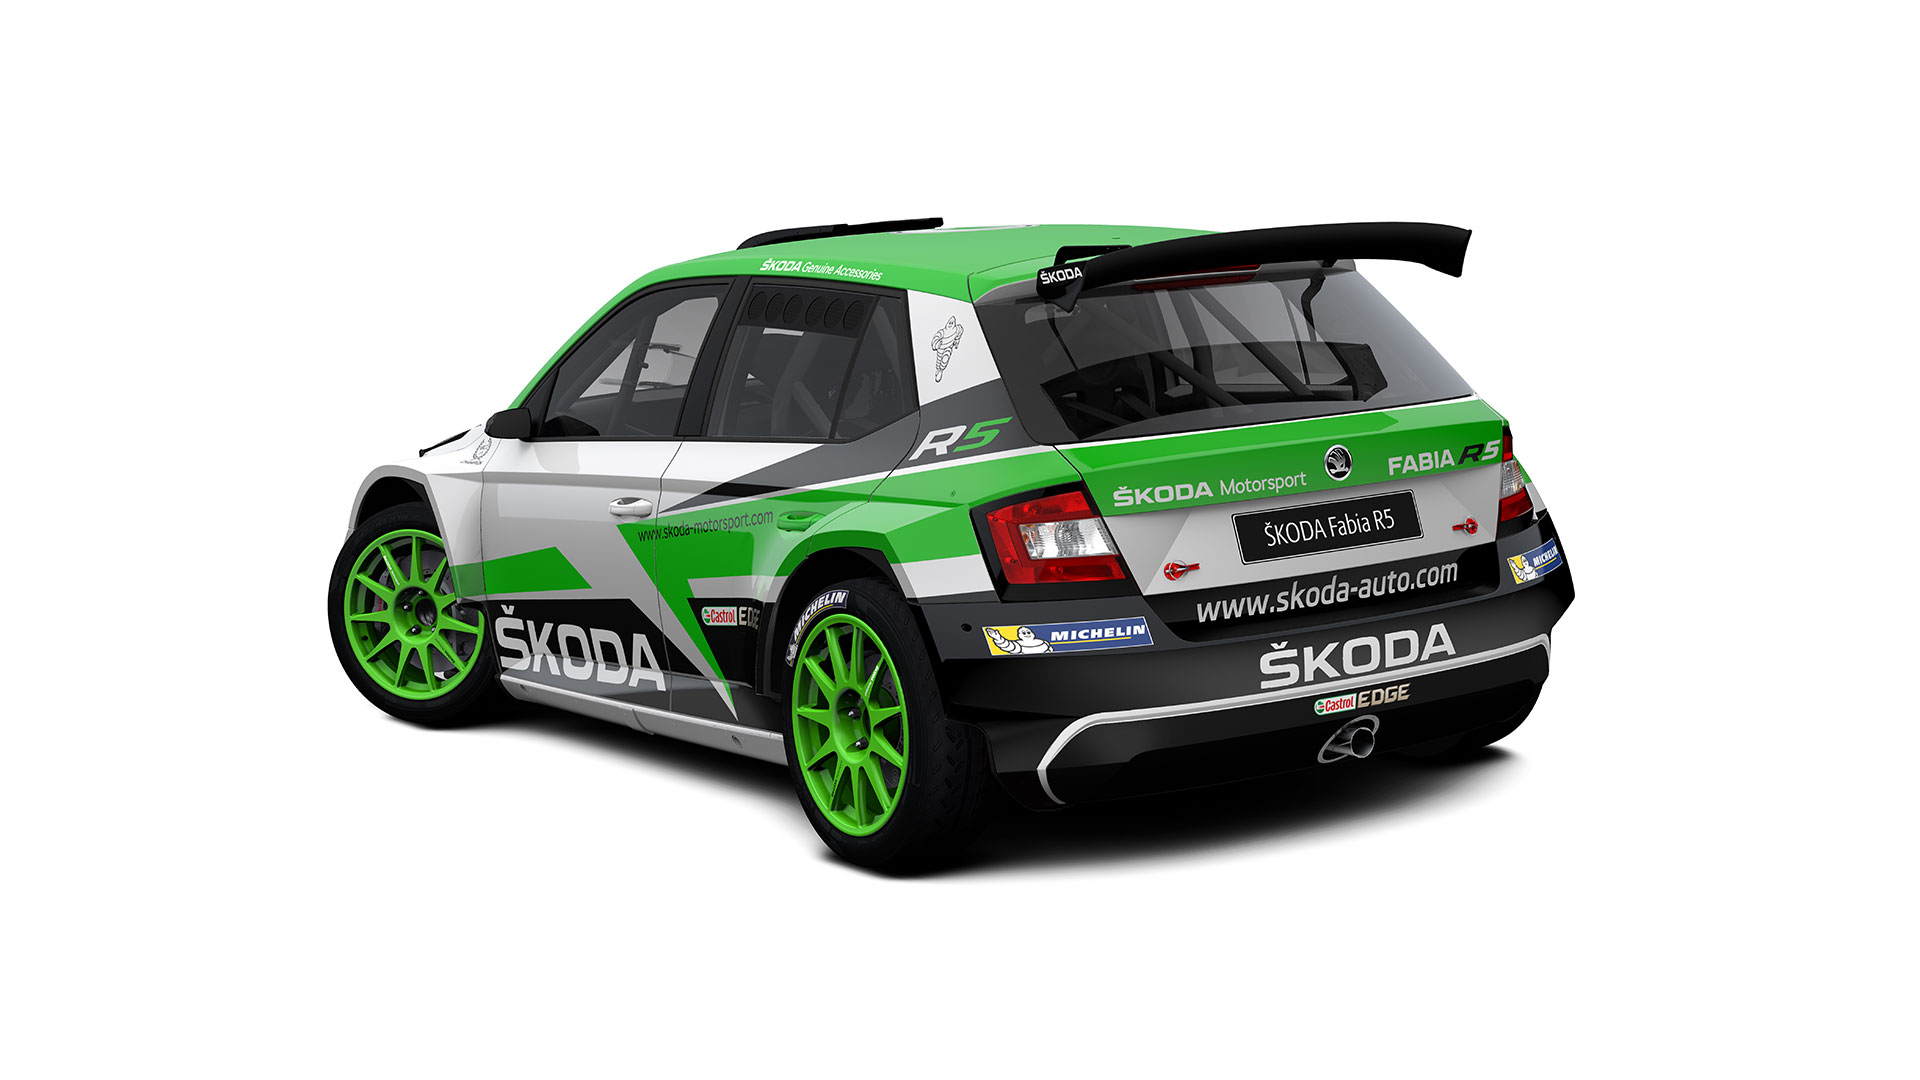 WRC Sweden: Home rally for Tidemand and Andersson - ŠKODA Motorsport